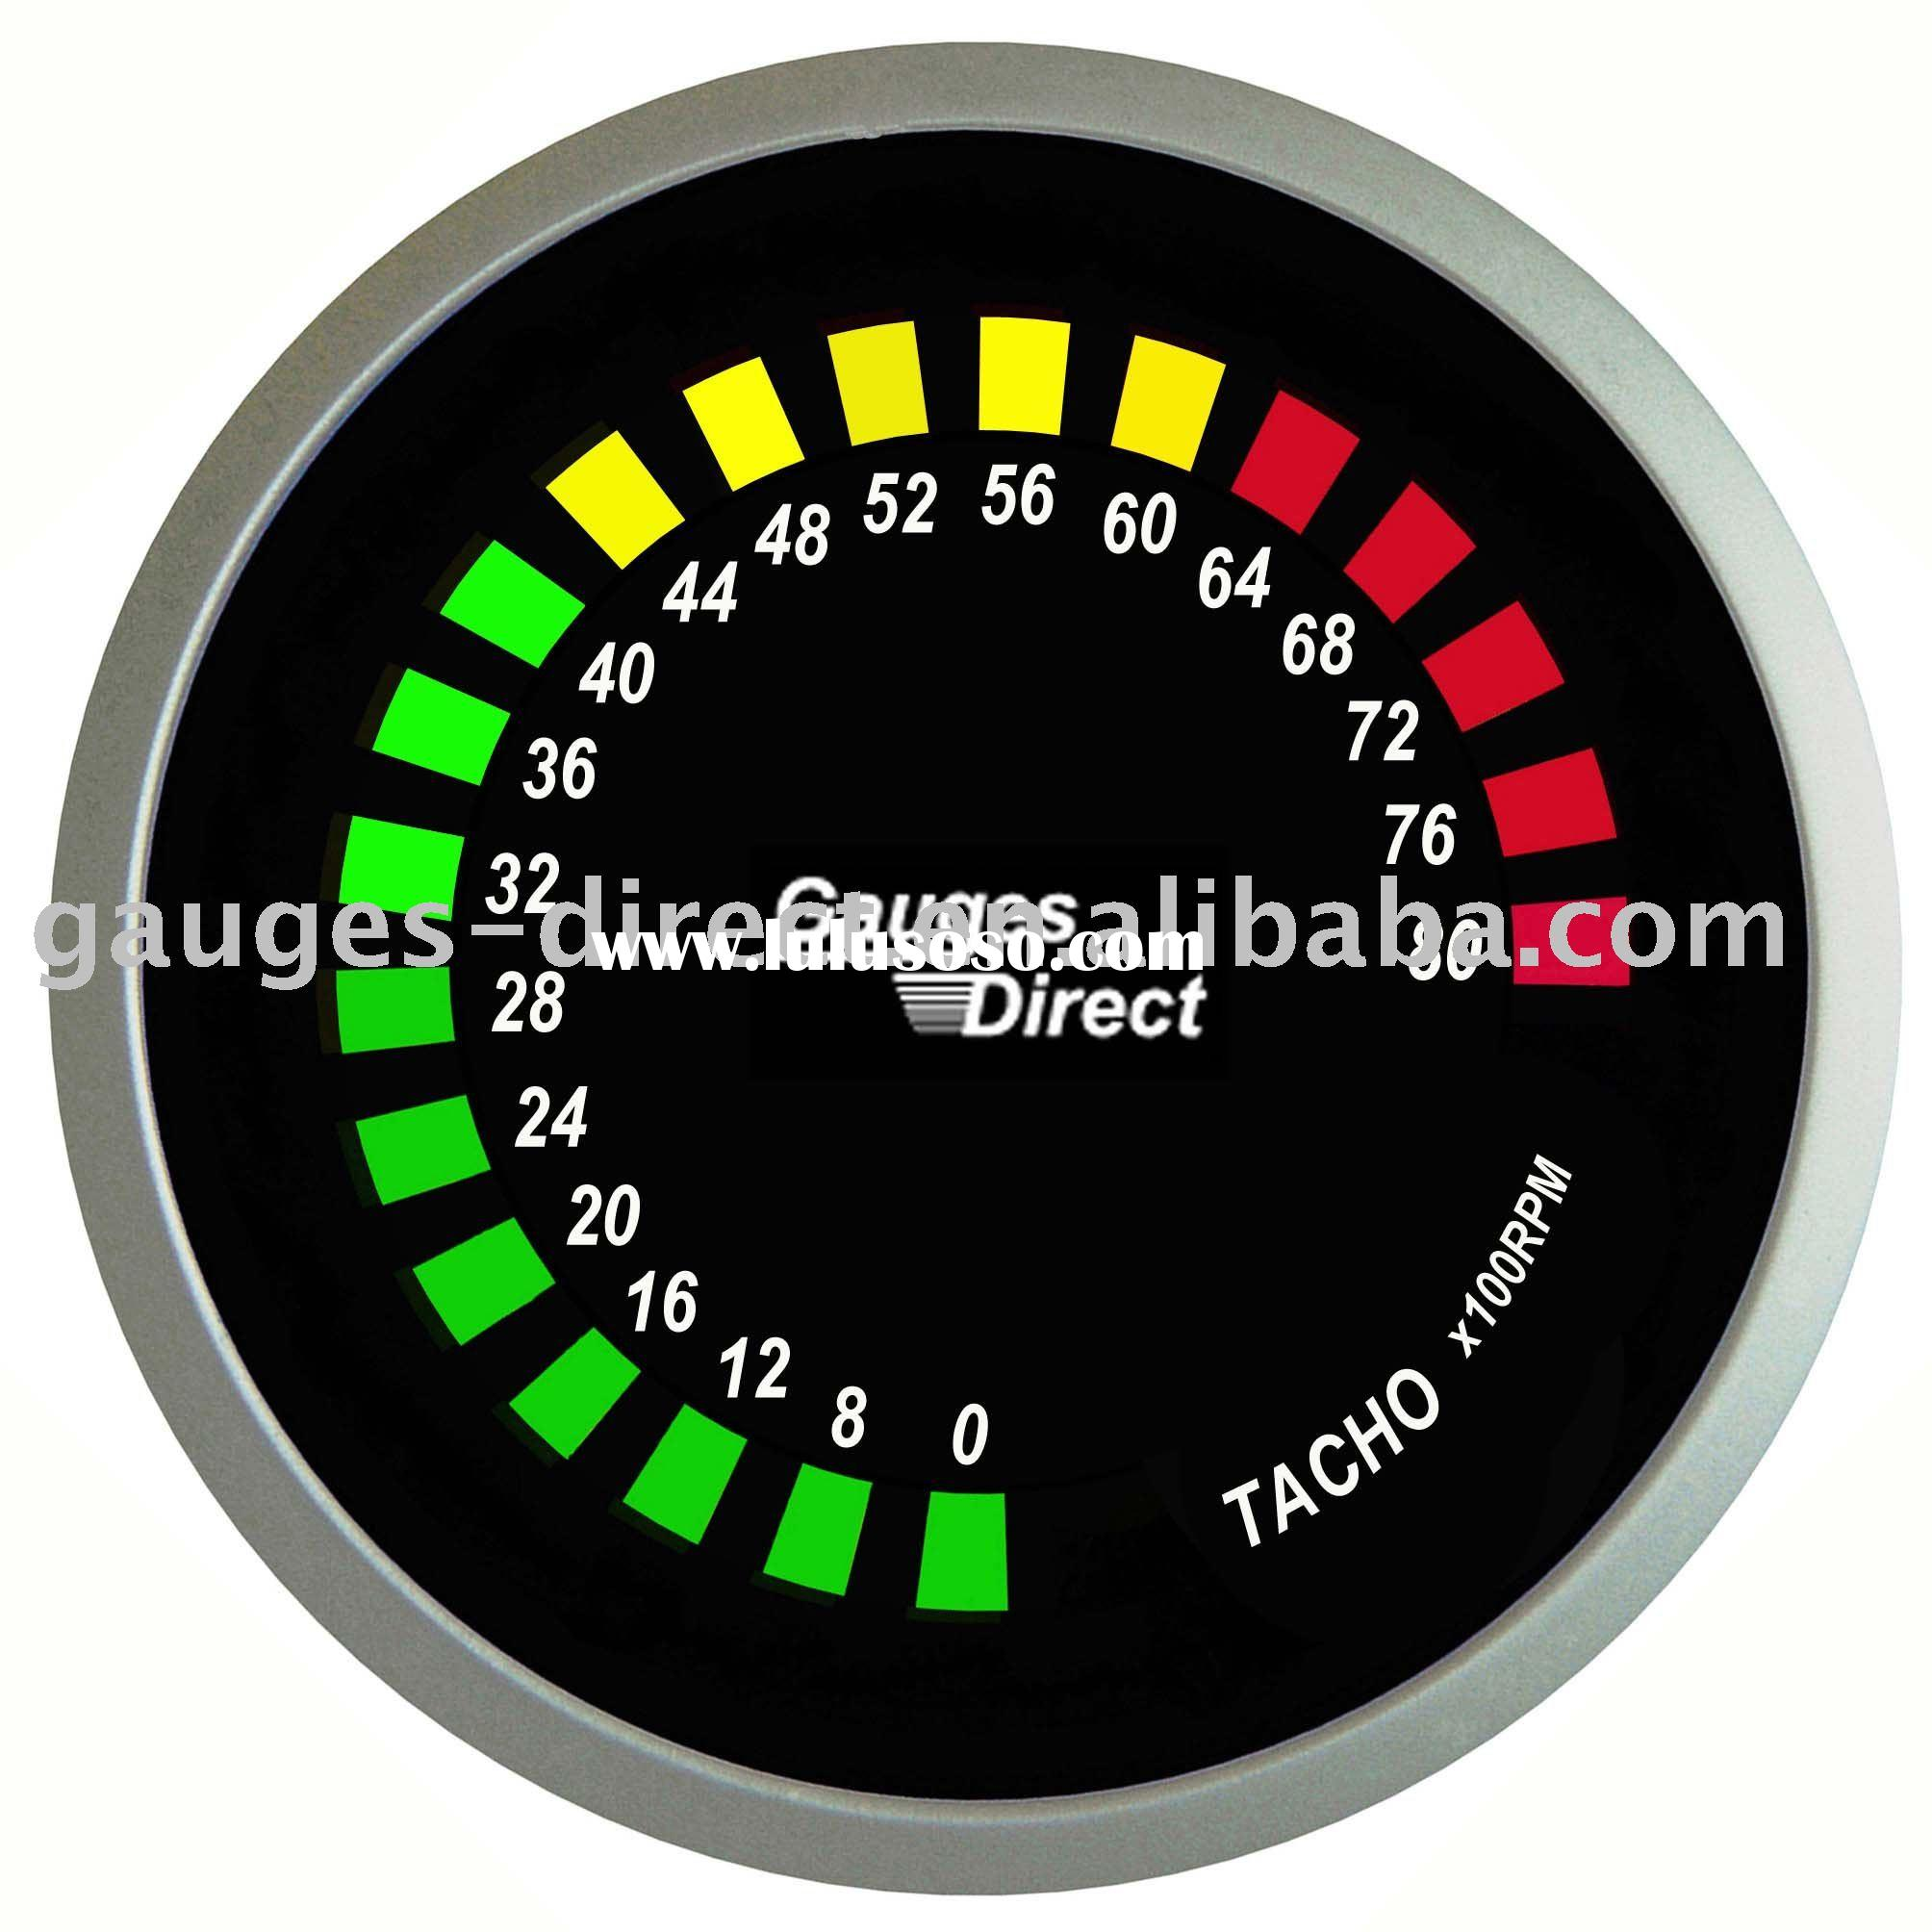 auto parts - Tachometer, RPM Gauge